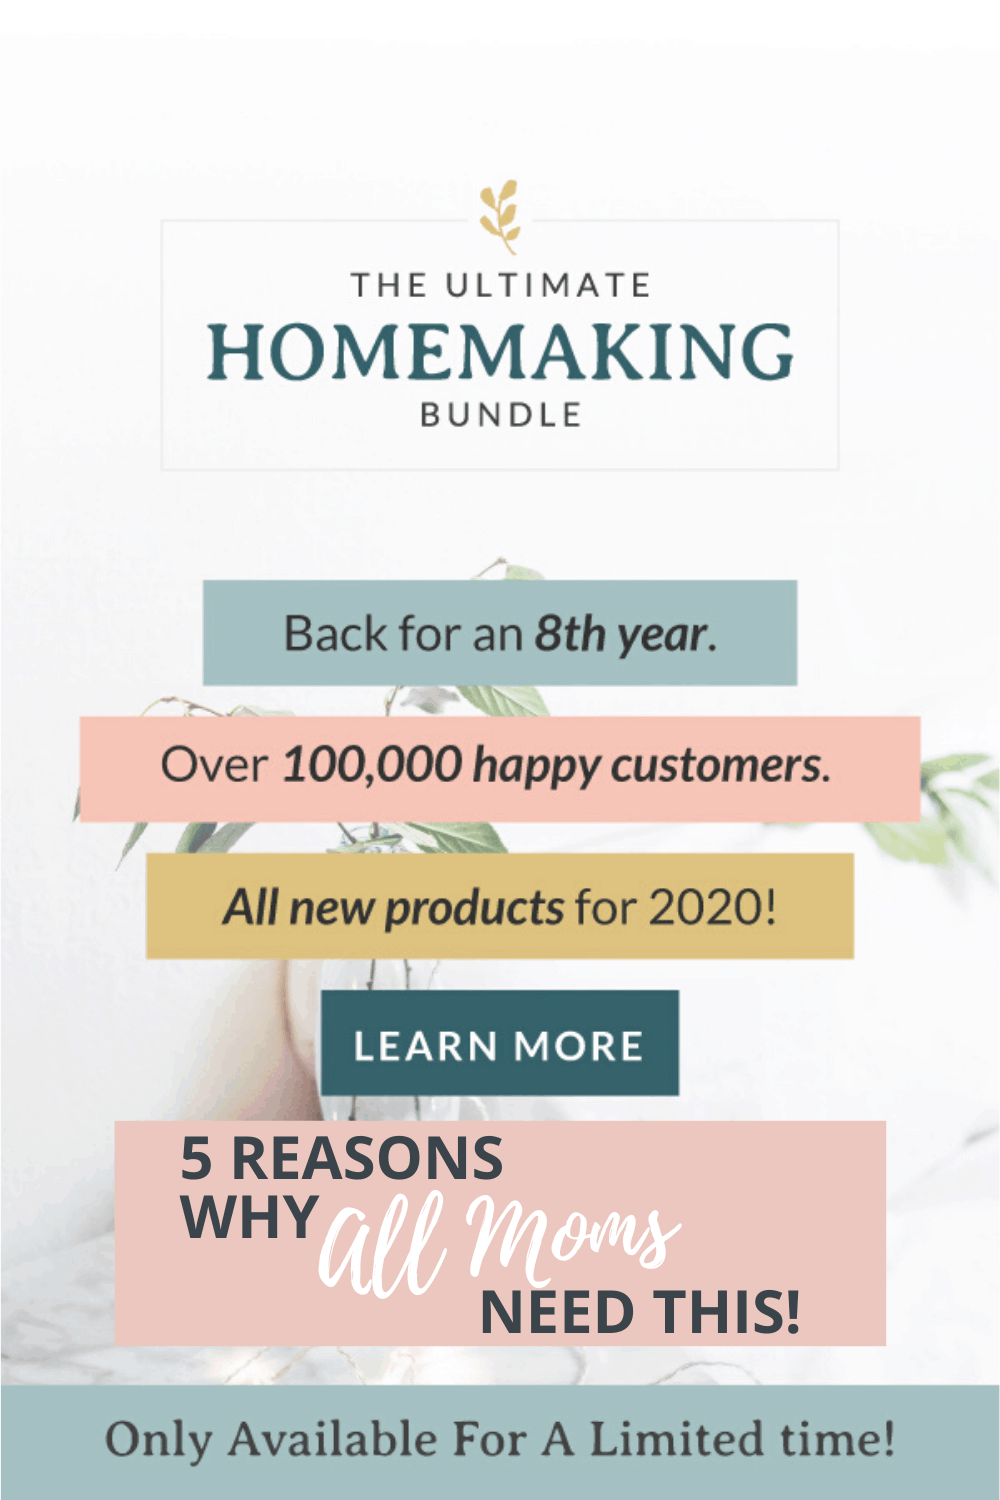 5 Reasons Why Every Mom Needs the Ultimate Homemaking Bundle